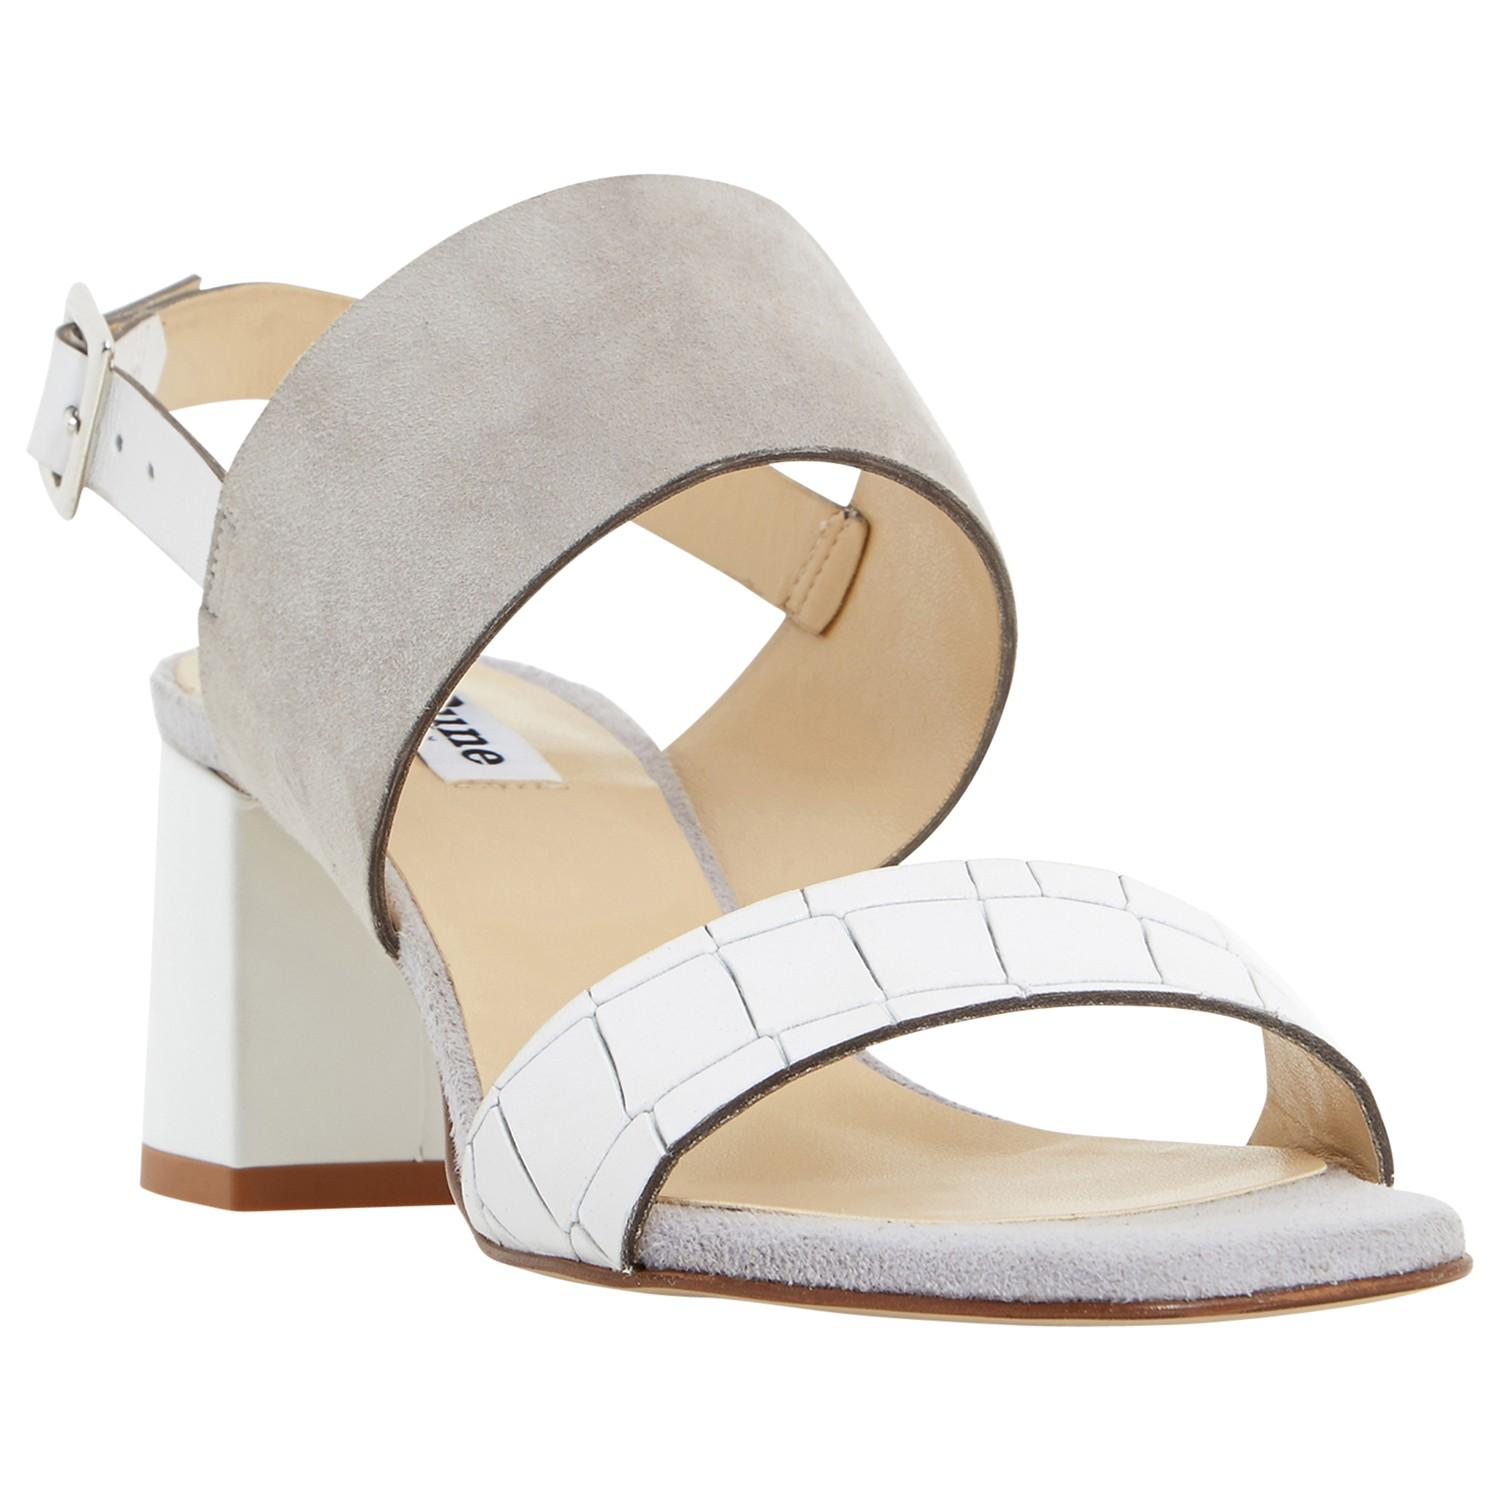 538d48ac2a72 Dune Jester Block Heeled Sandals in Gray - Lyst